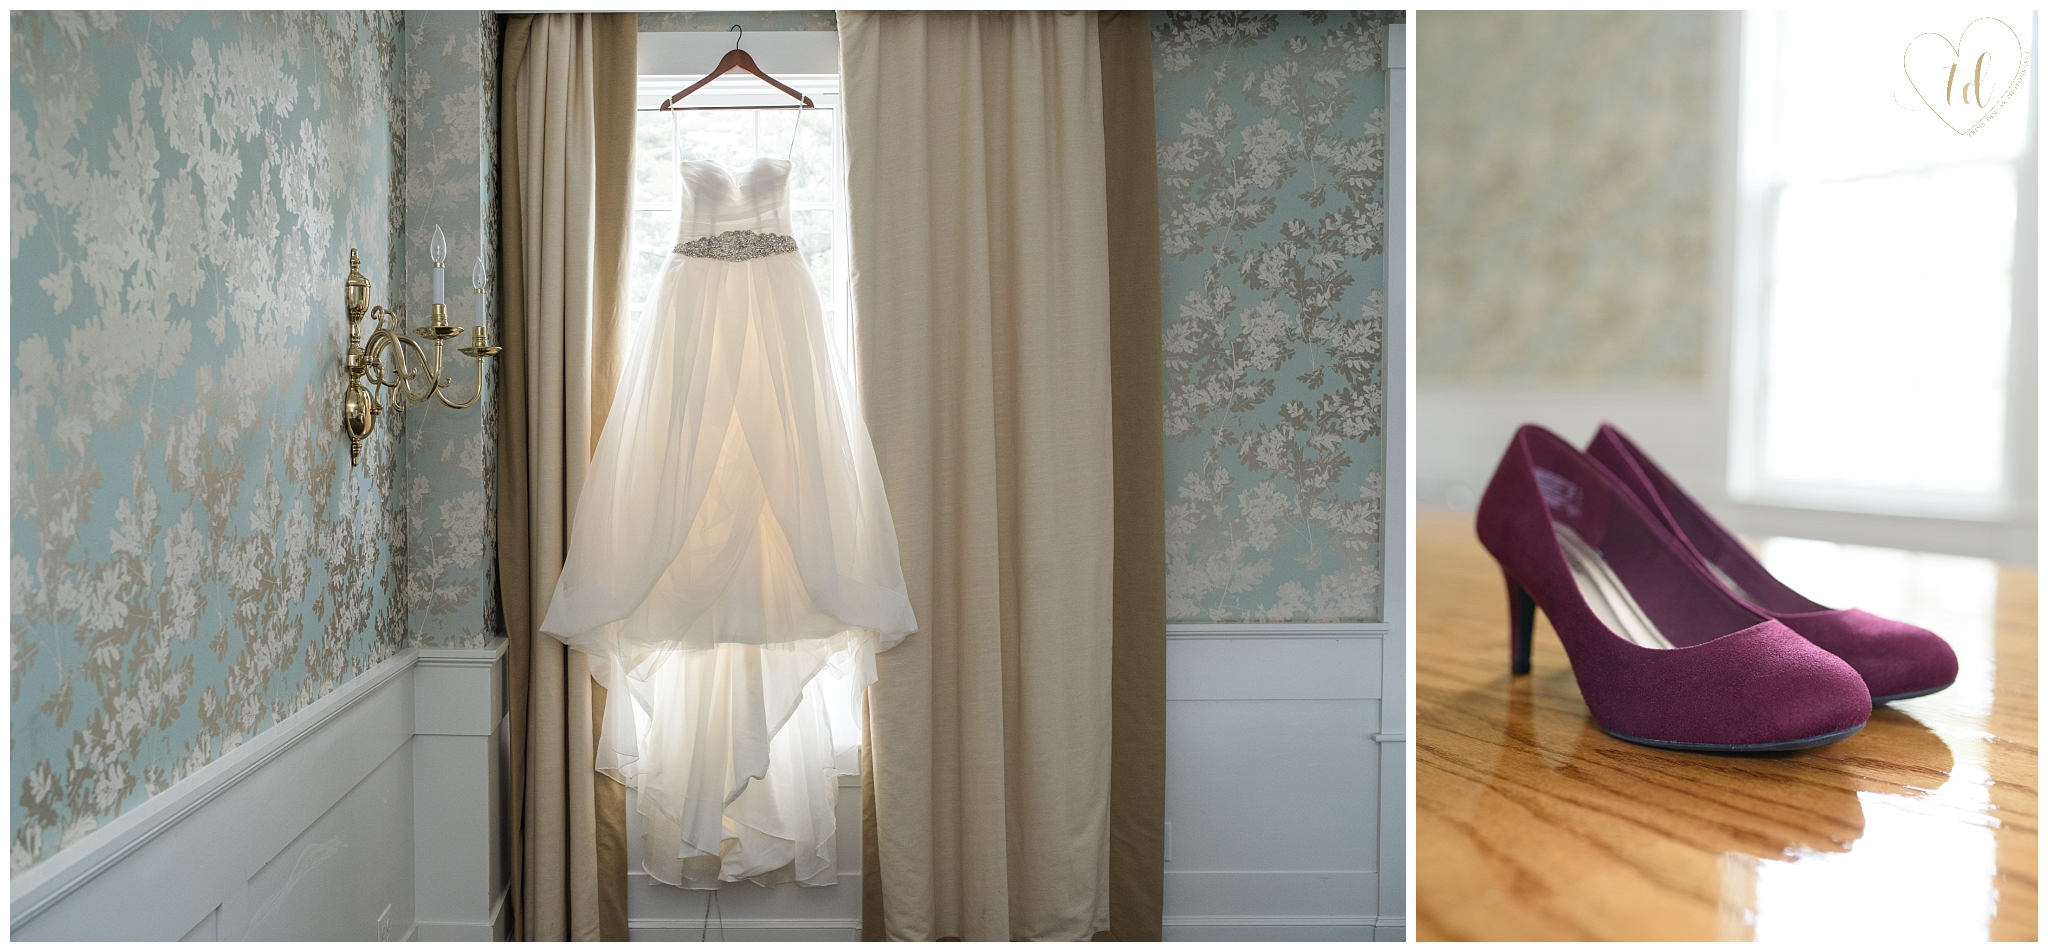 Wedding dress and shoes from a Kennebunk, Maine wedding.